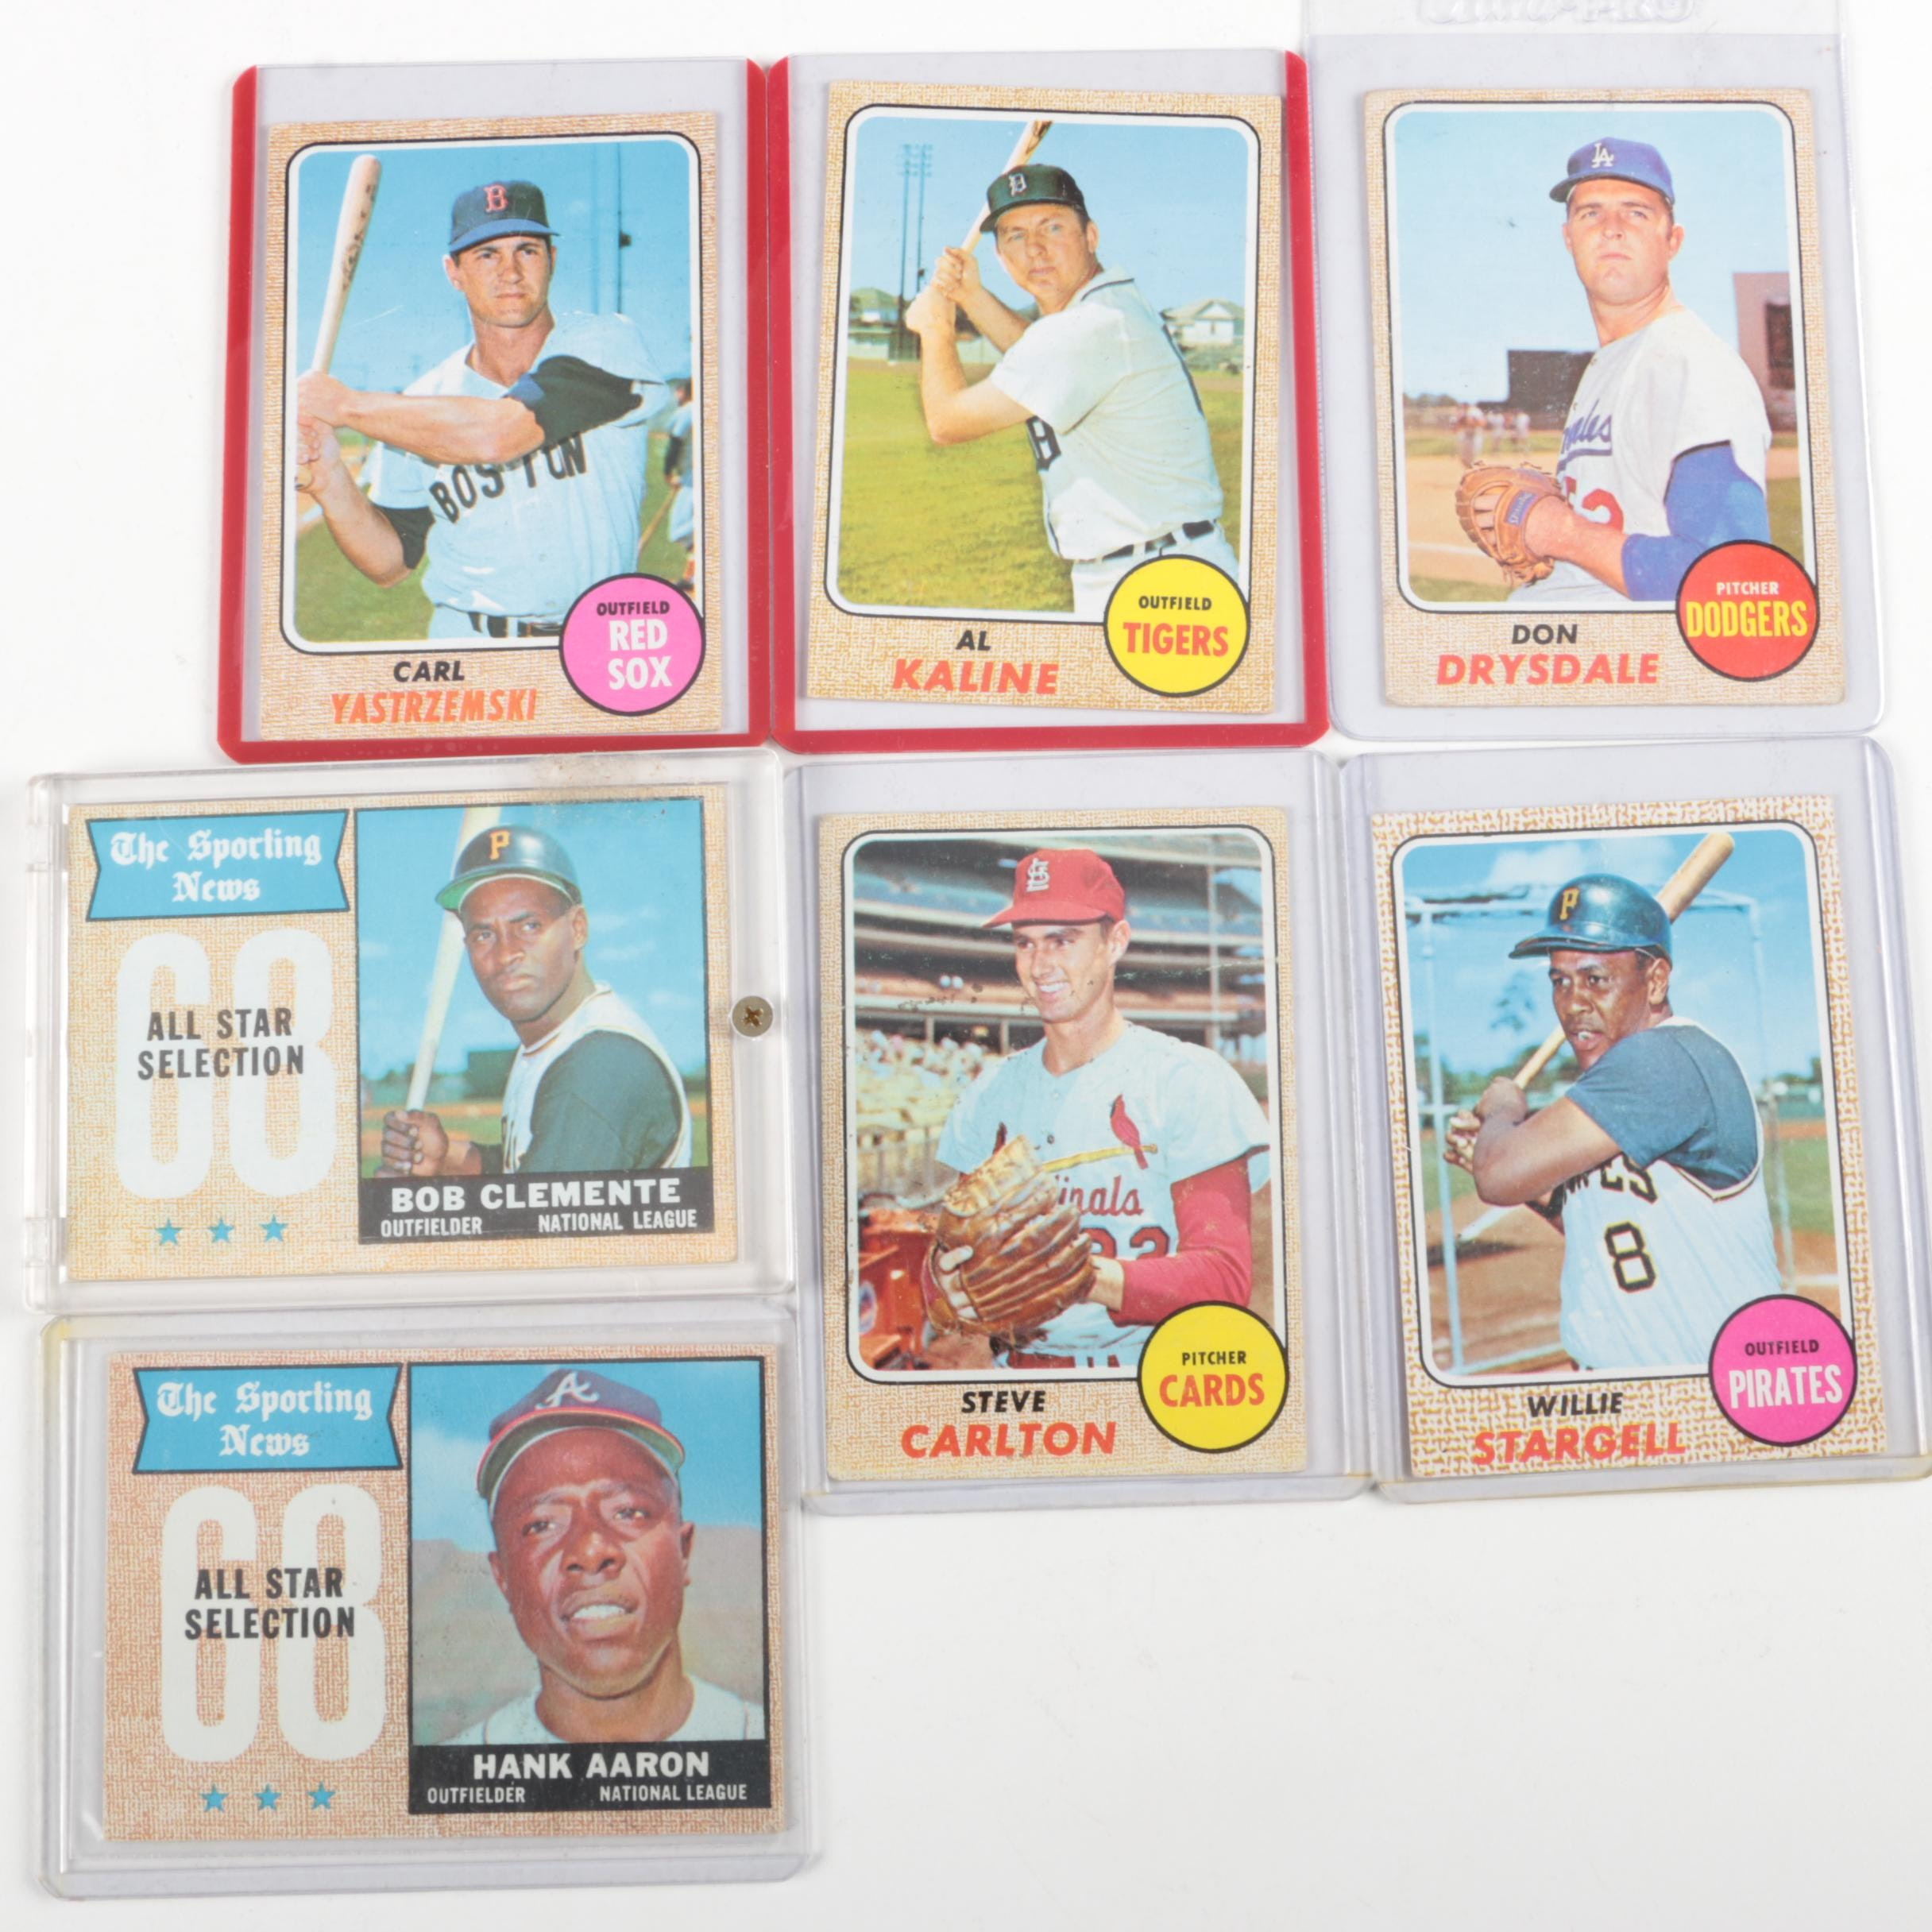 Collection of Baseball Cards from the 1960s